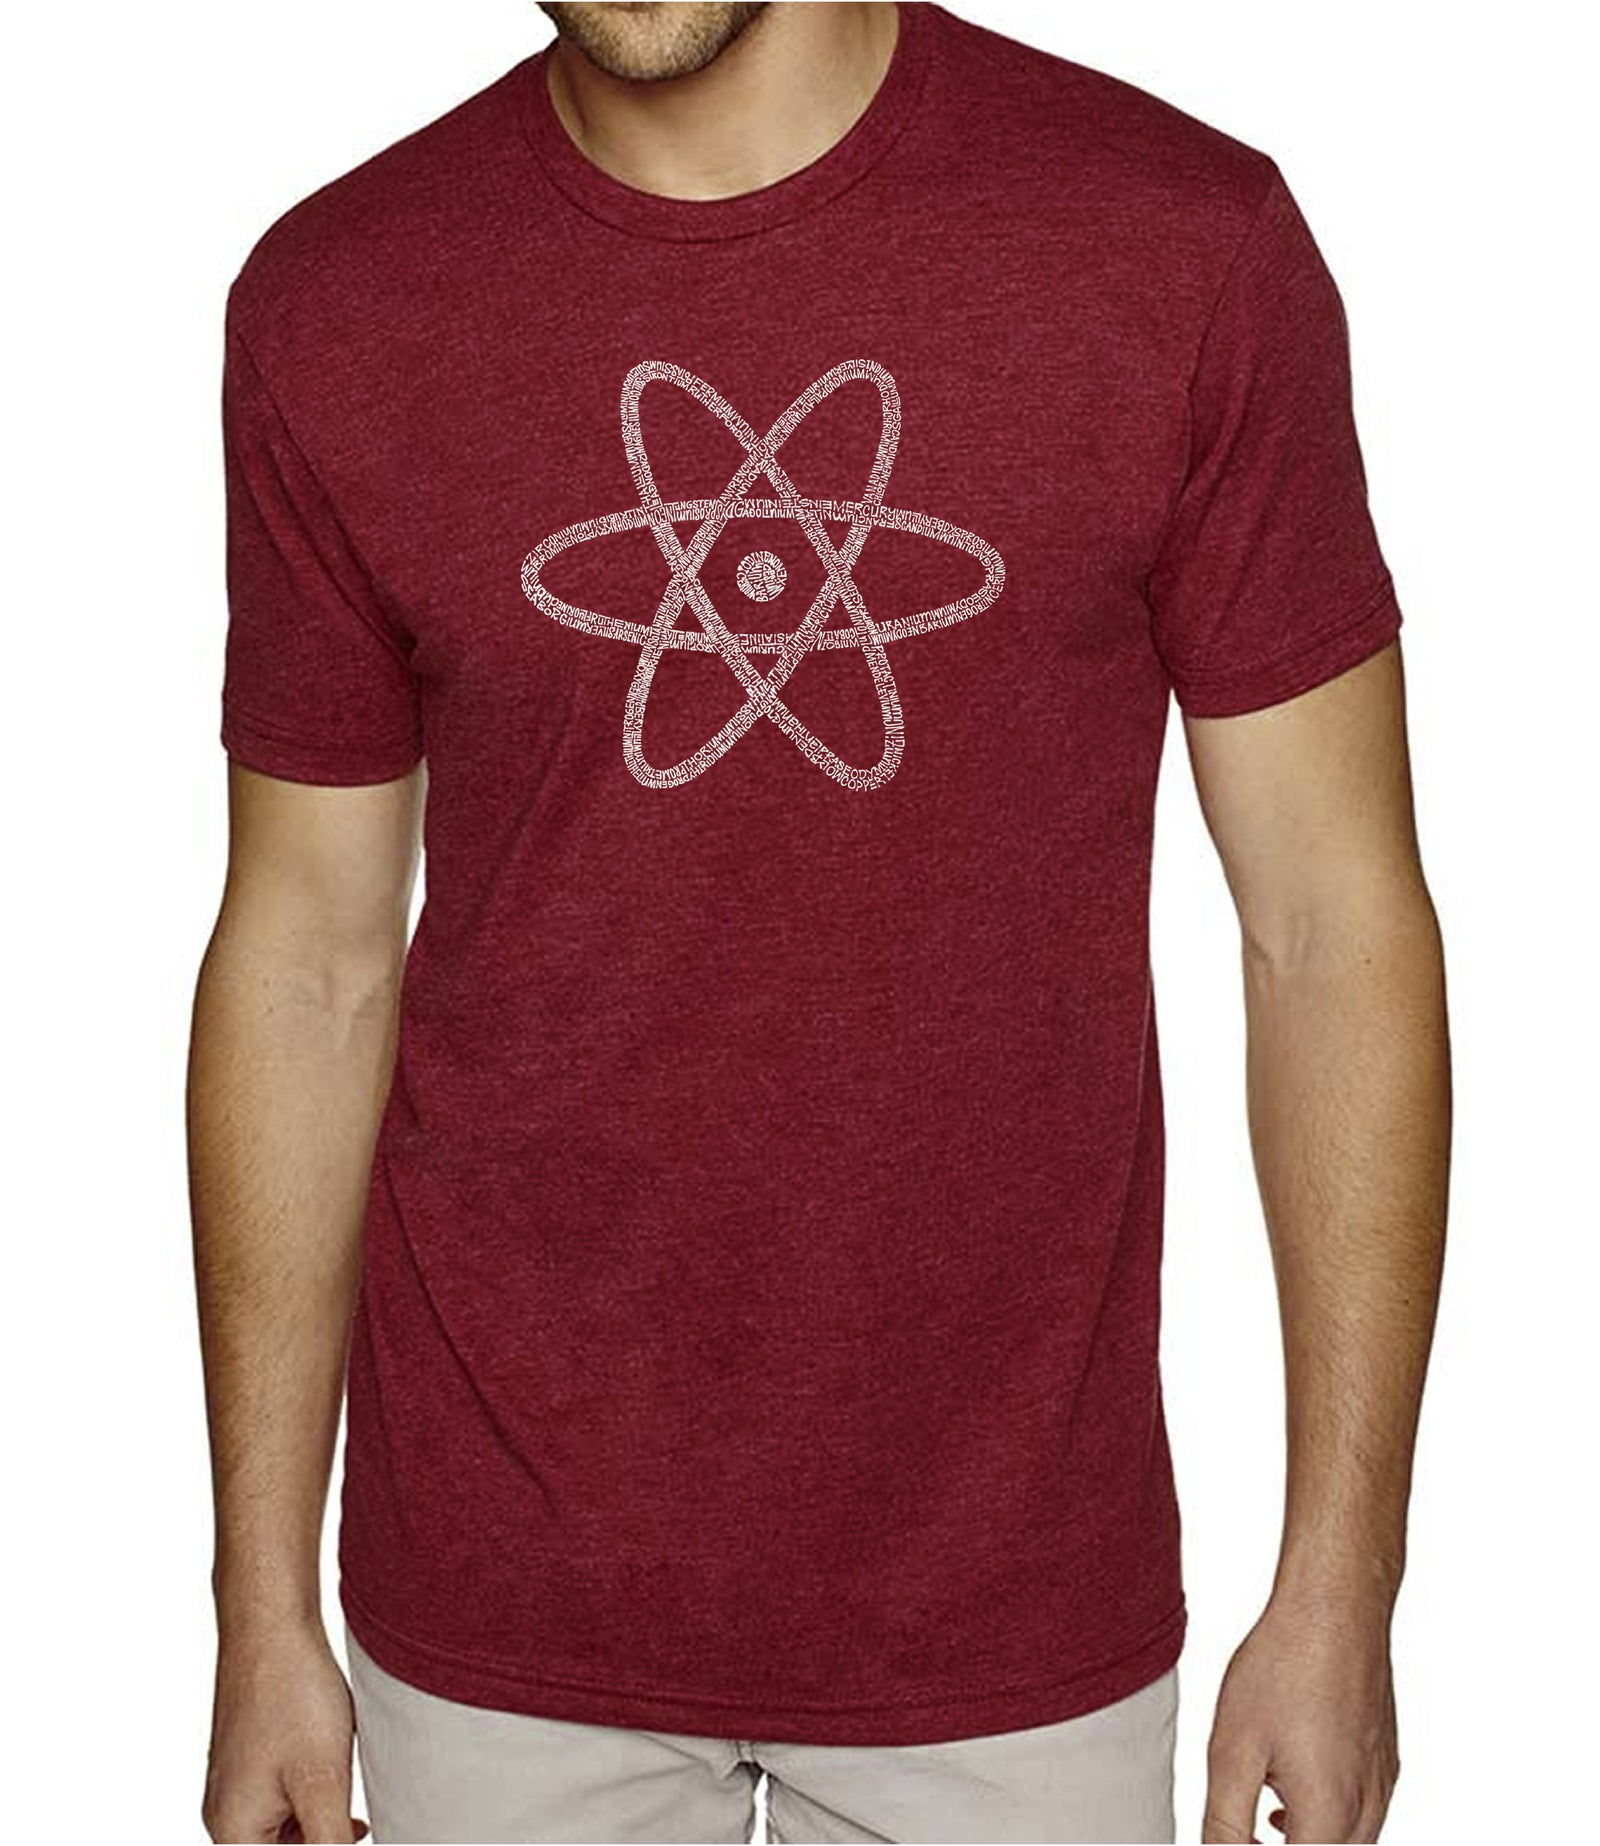 Men's Premium Blend Word Art T-shirt - ATOM